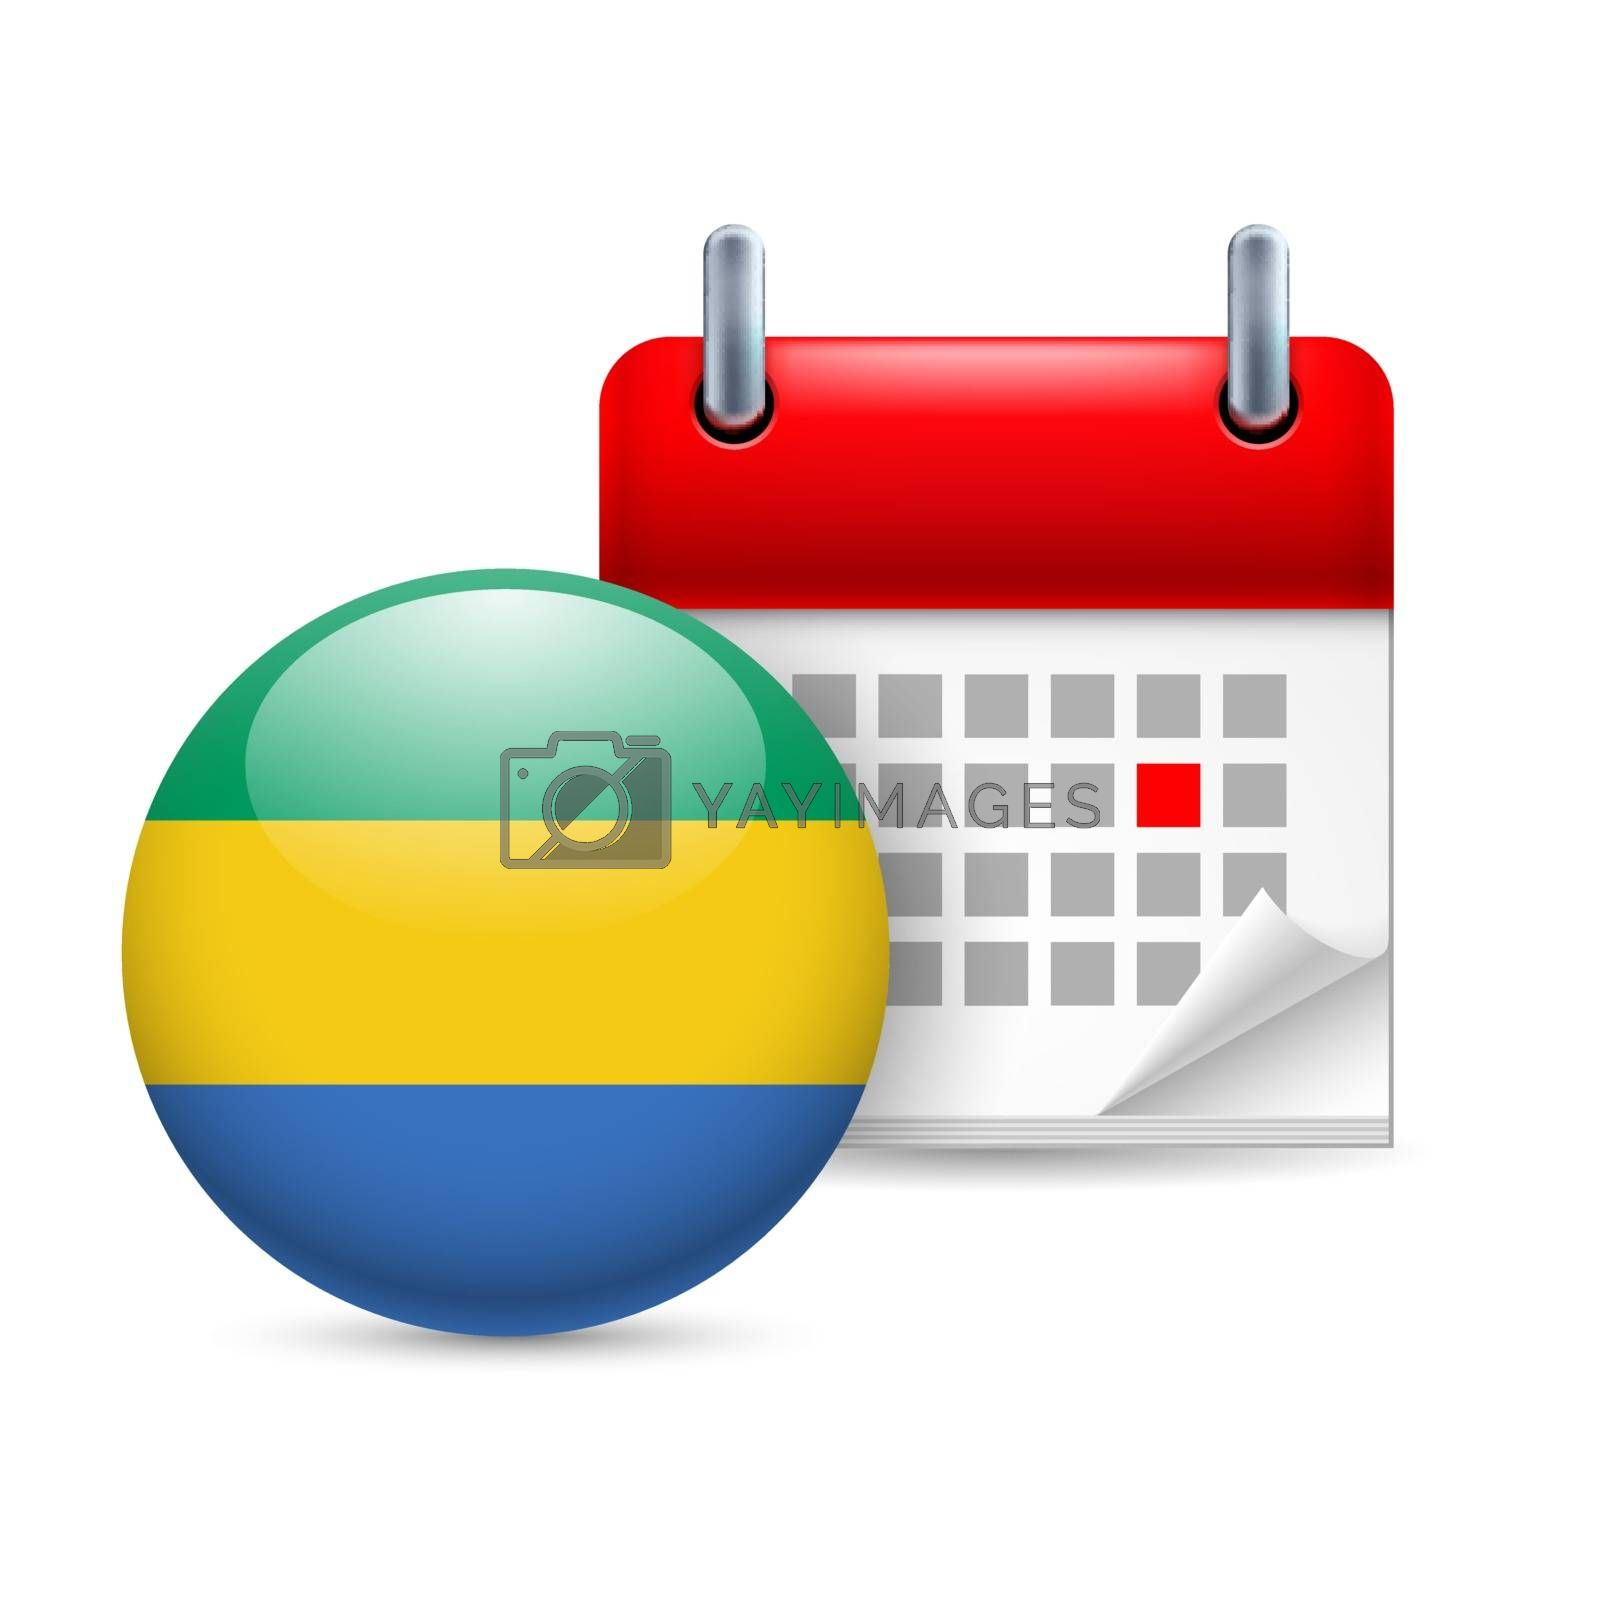 Royalty free image of Icon of National Day in  Gabon by dvarg